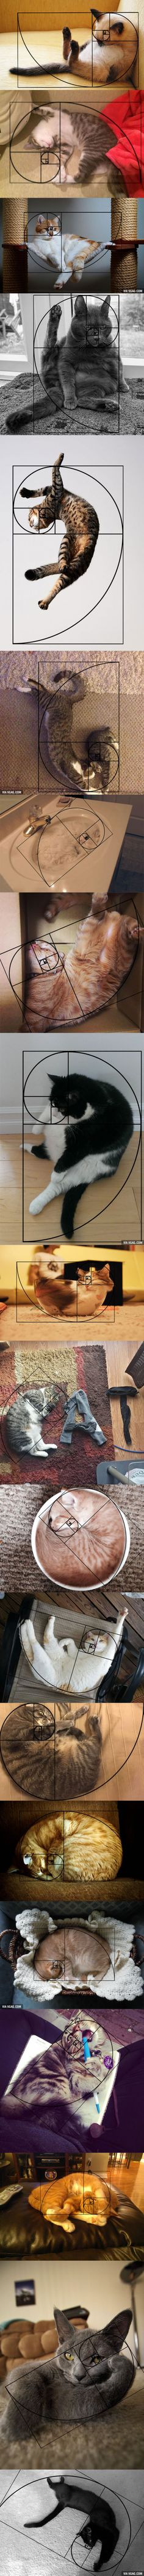 There Are 20 Pictures Proved That Cats Are In Fibonacci Sequence